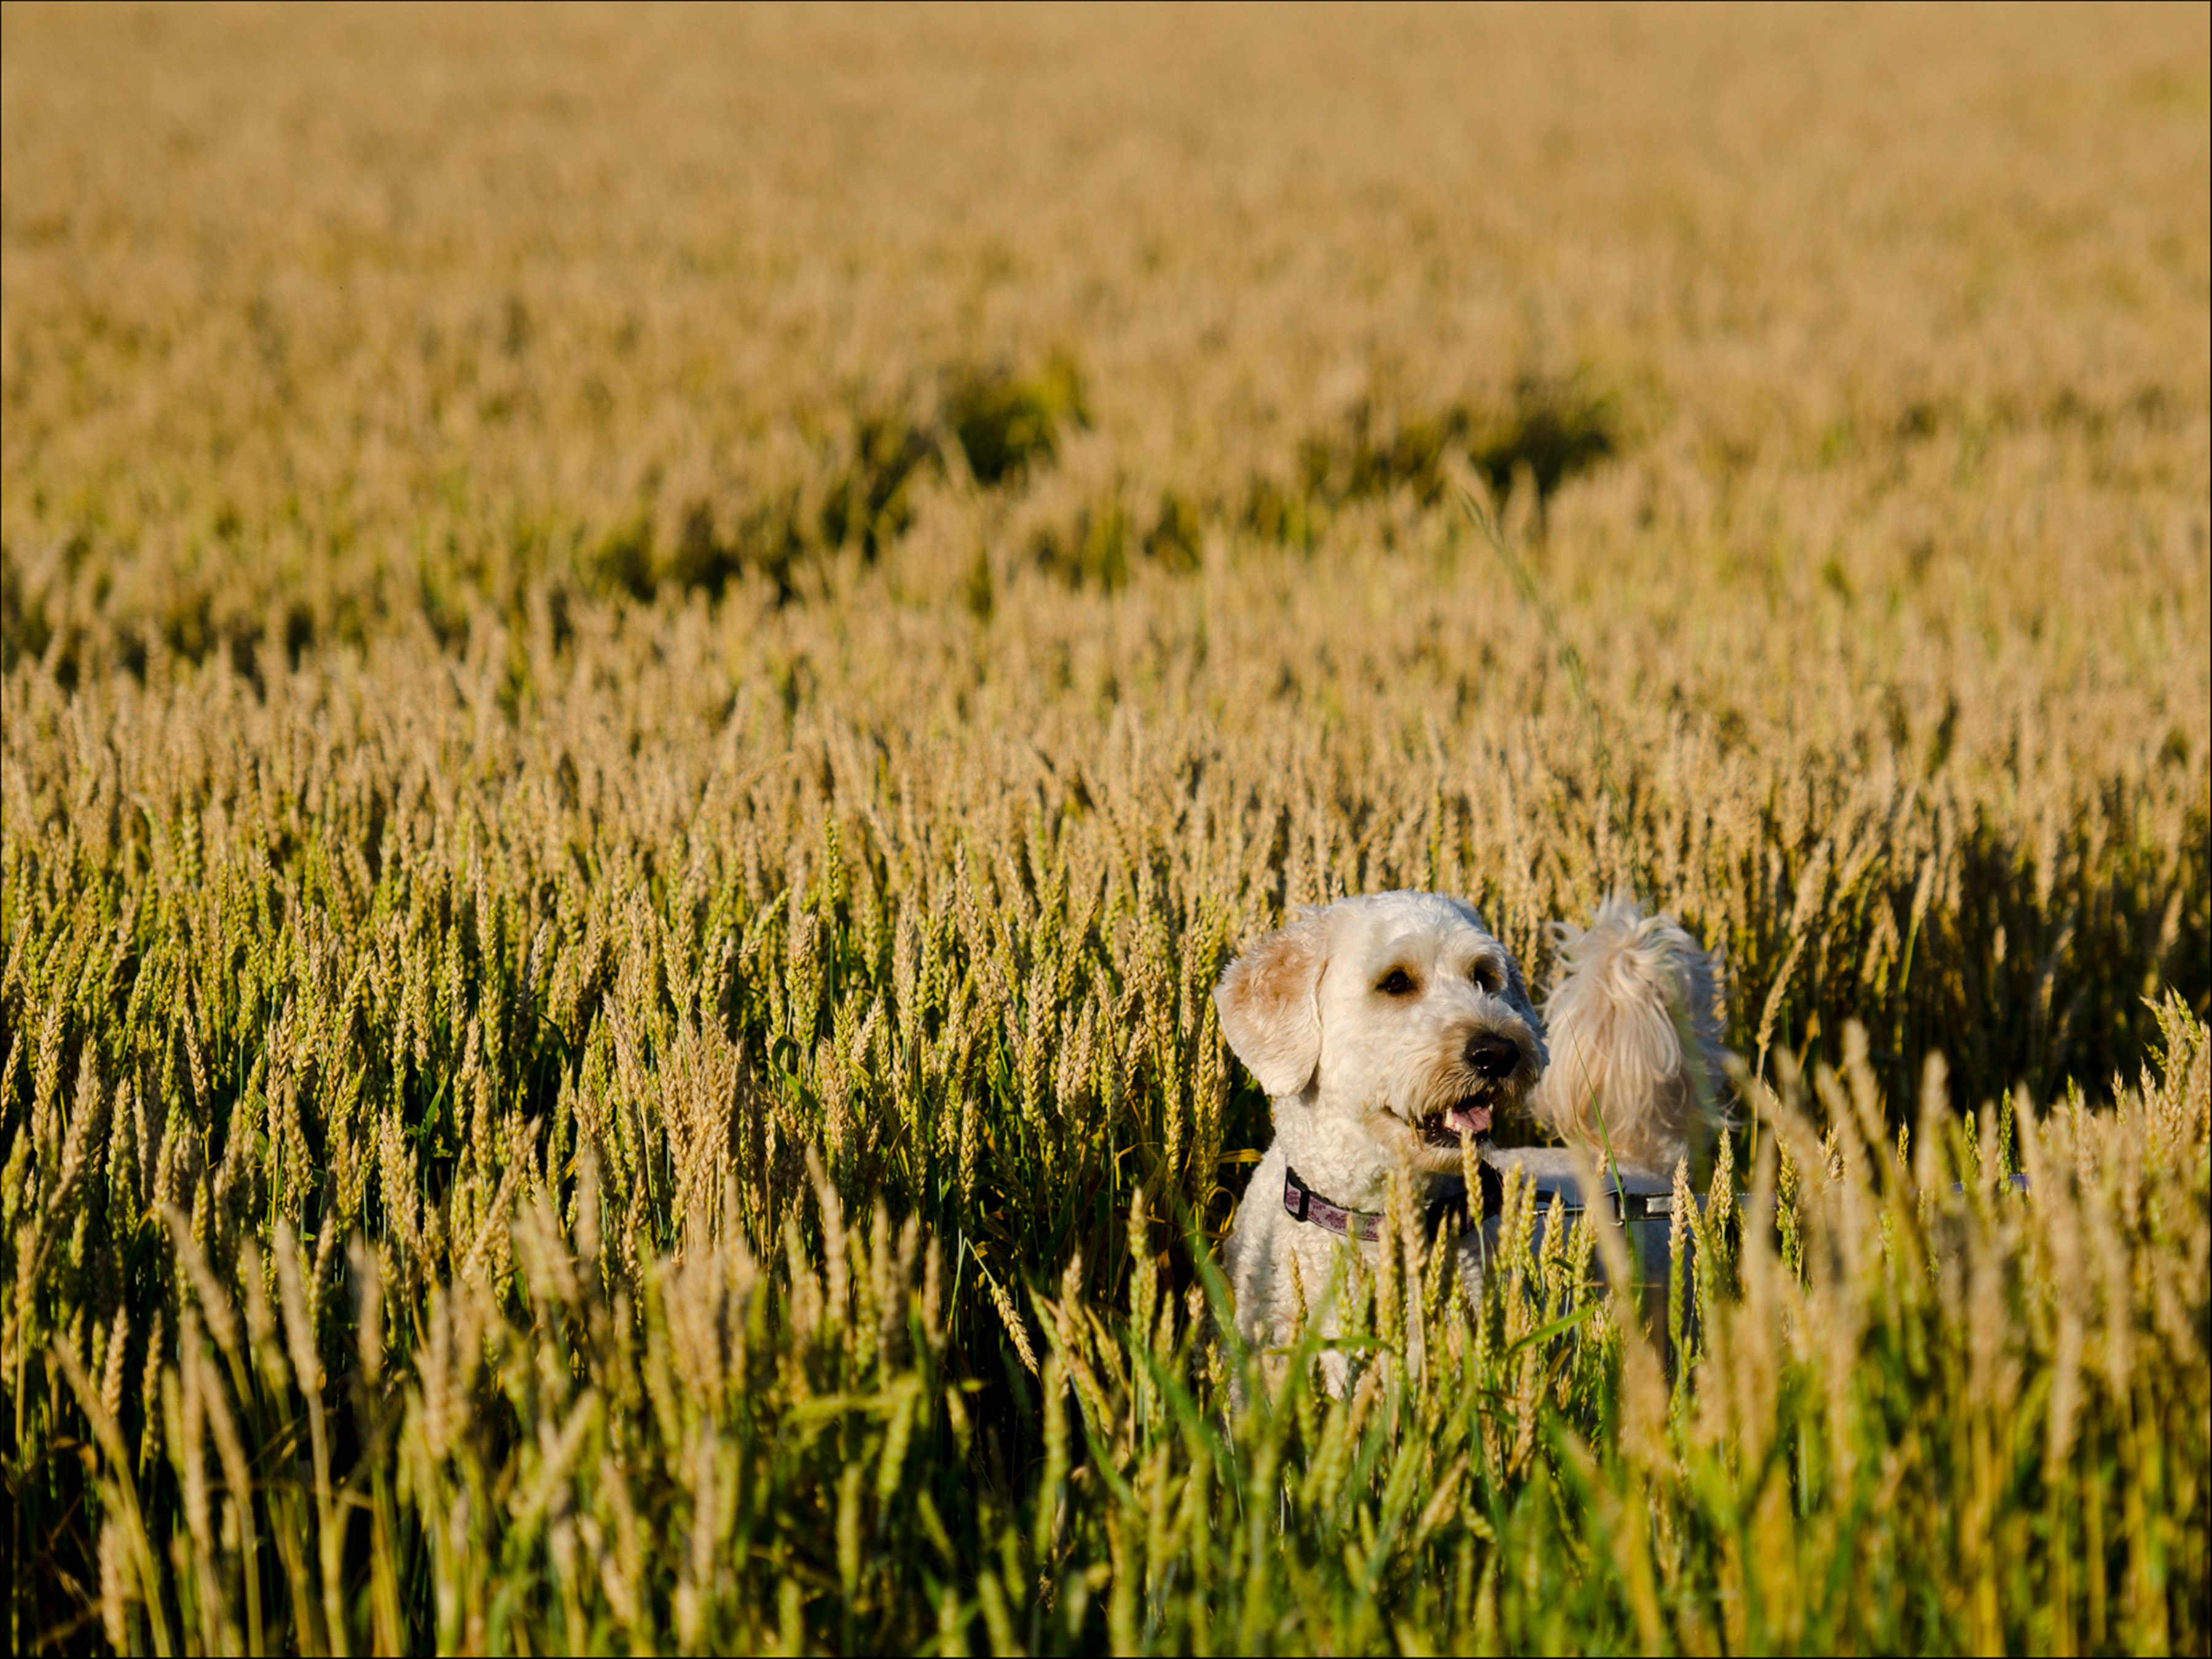 White dog playing in field